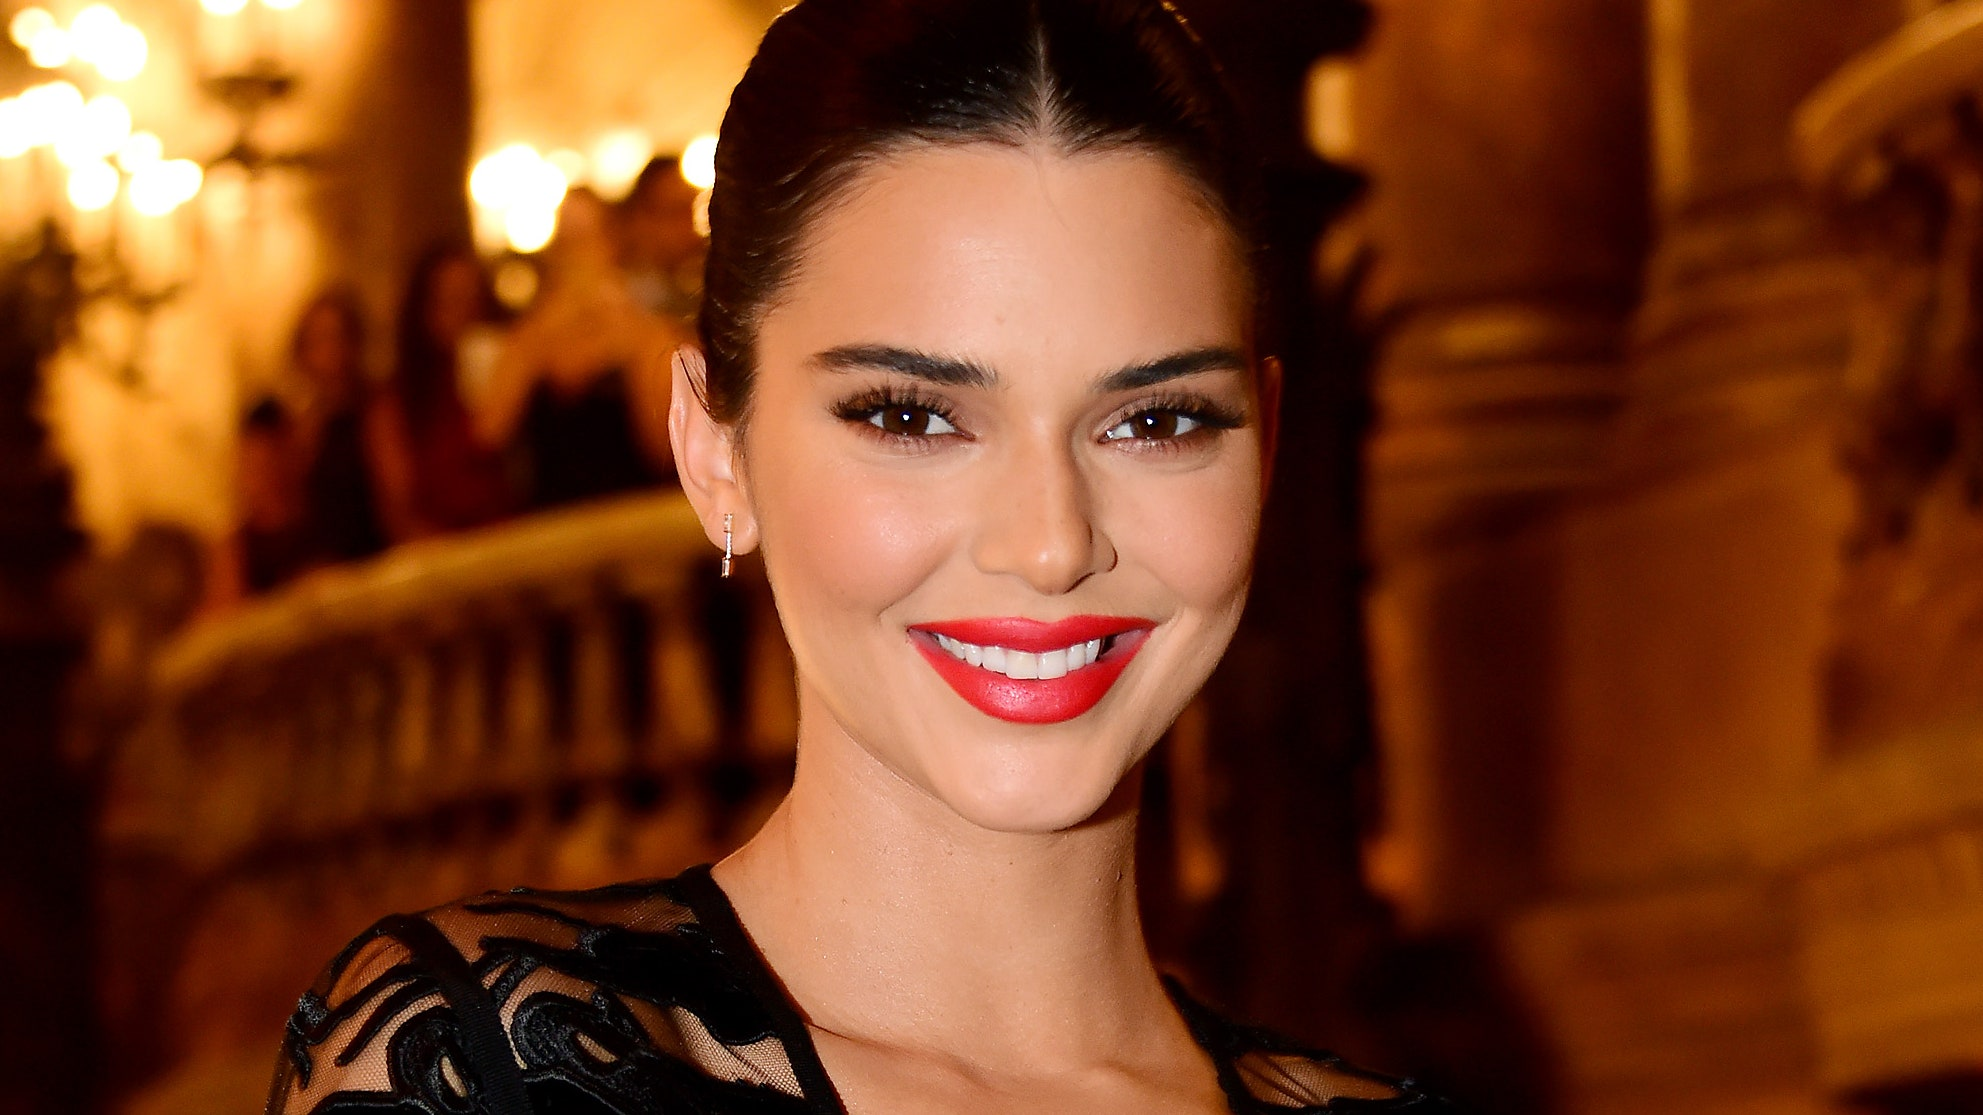 KUWTK: Intruder Arrested After Breaking Into Kendall Jenner's Home And Swimming In Her Pool – Details!